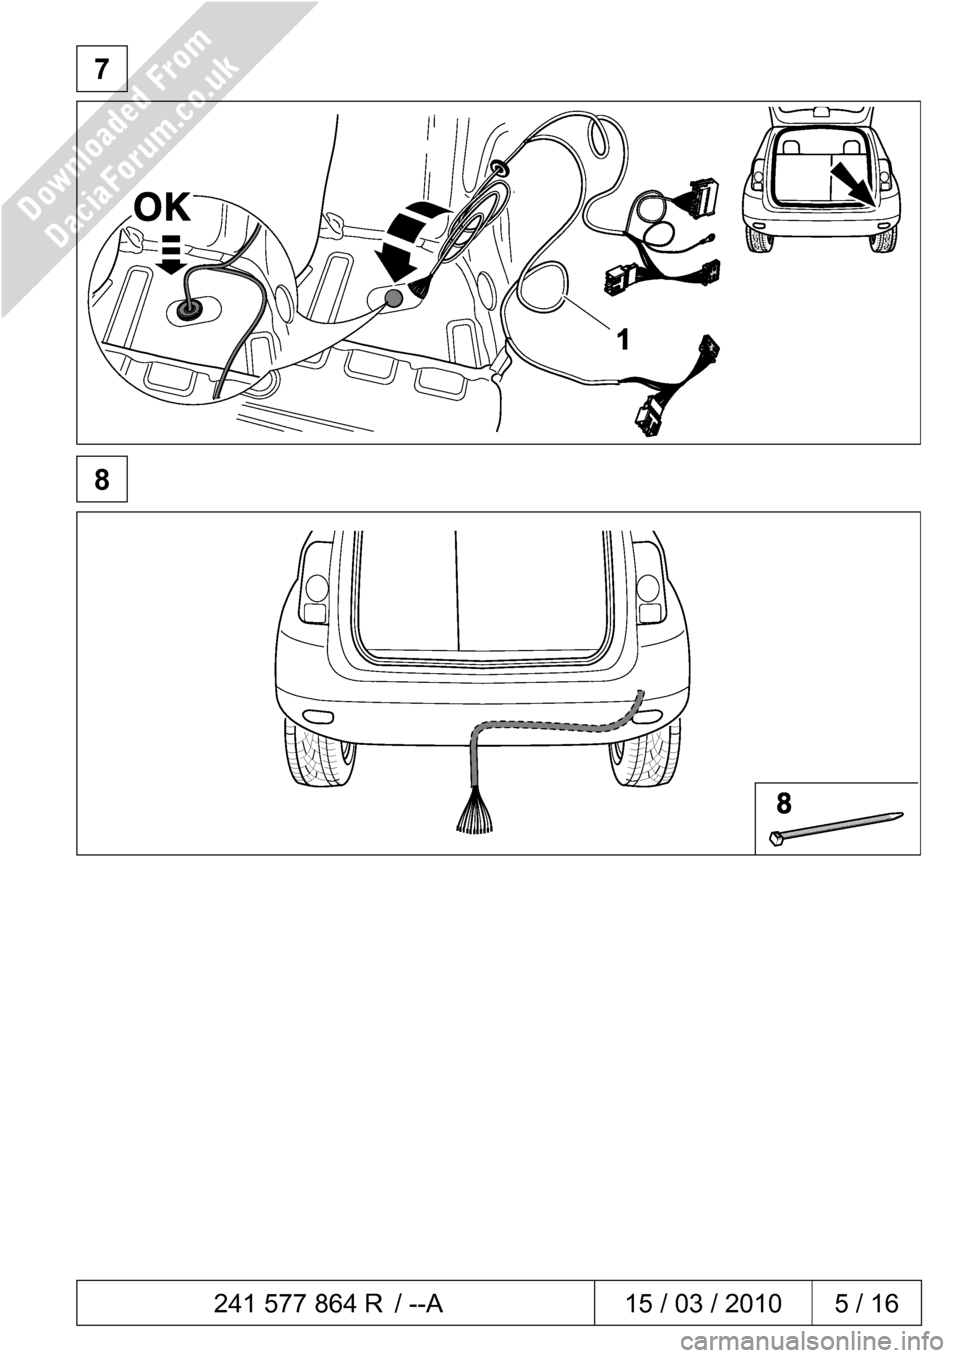 DACIA DUSTER 2010 1.G 7 Pin Towbar Fitting Guide Workshop Manual  241 577 864 R / --A  15 / 03 / 2010  5 / 16     7              8